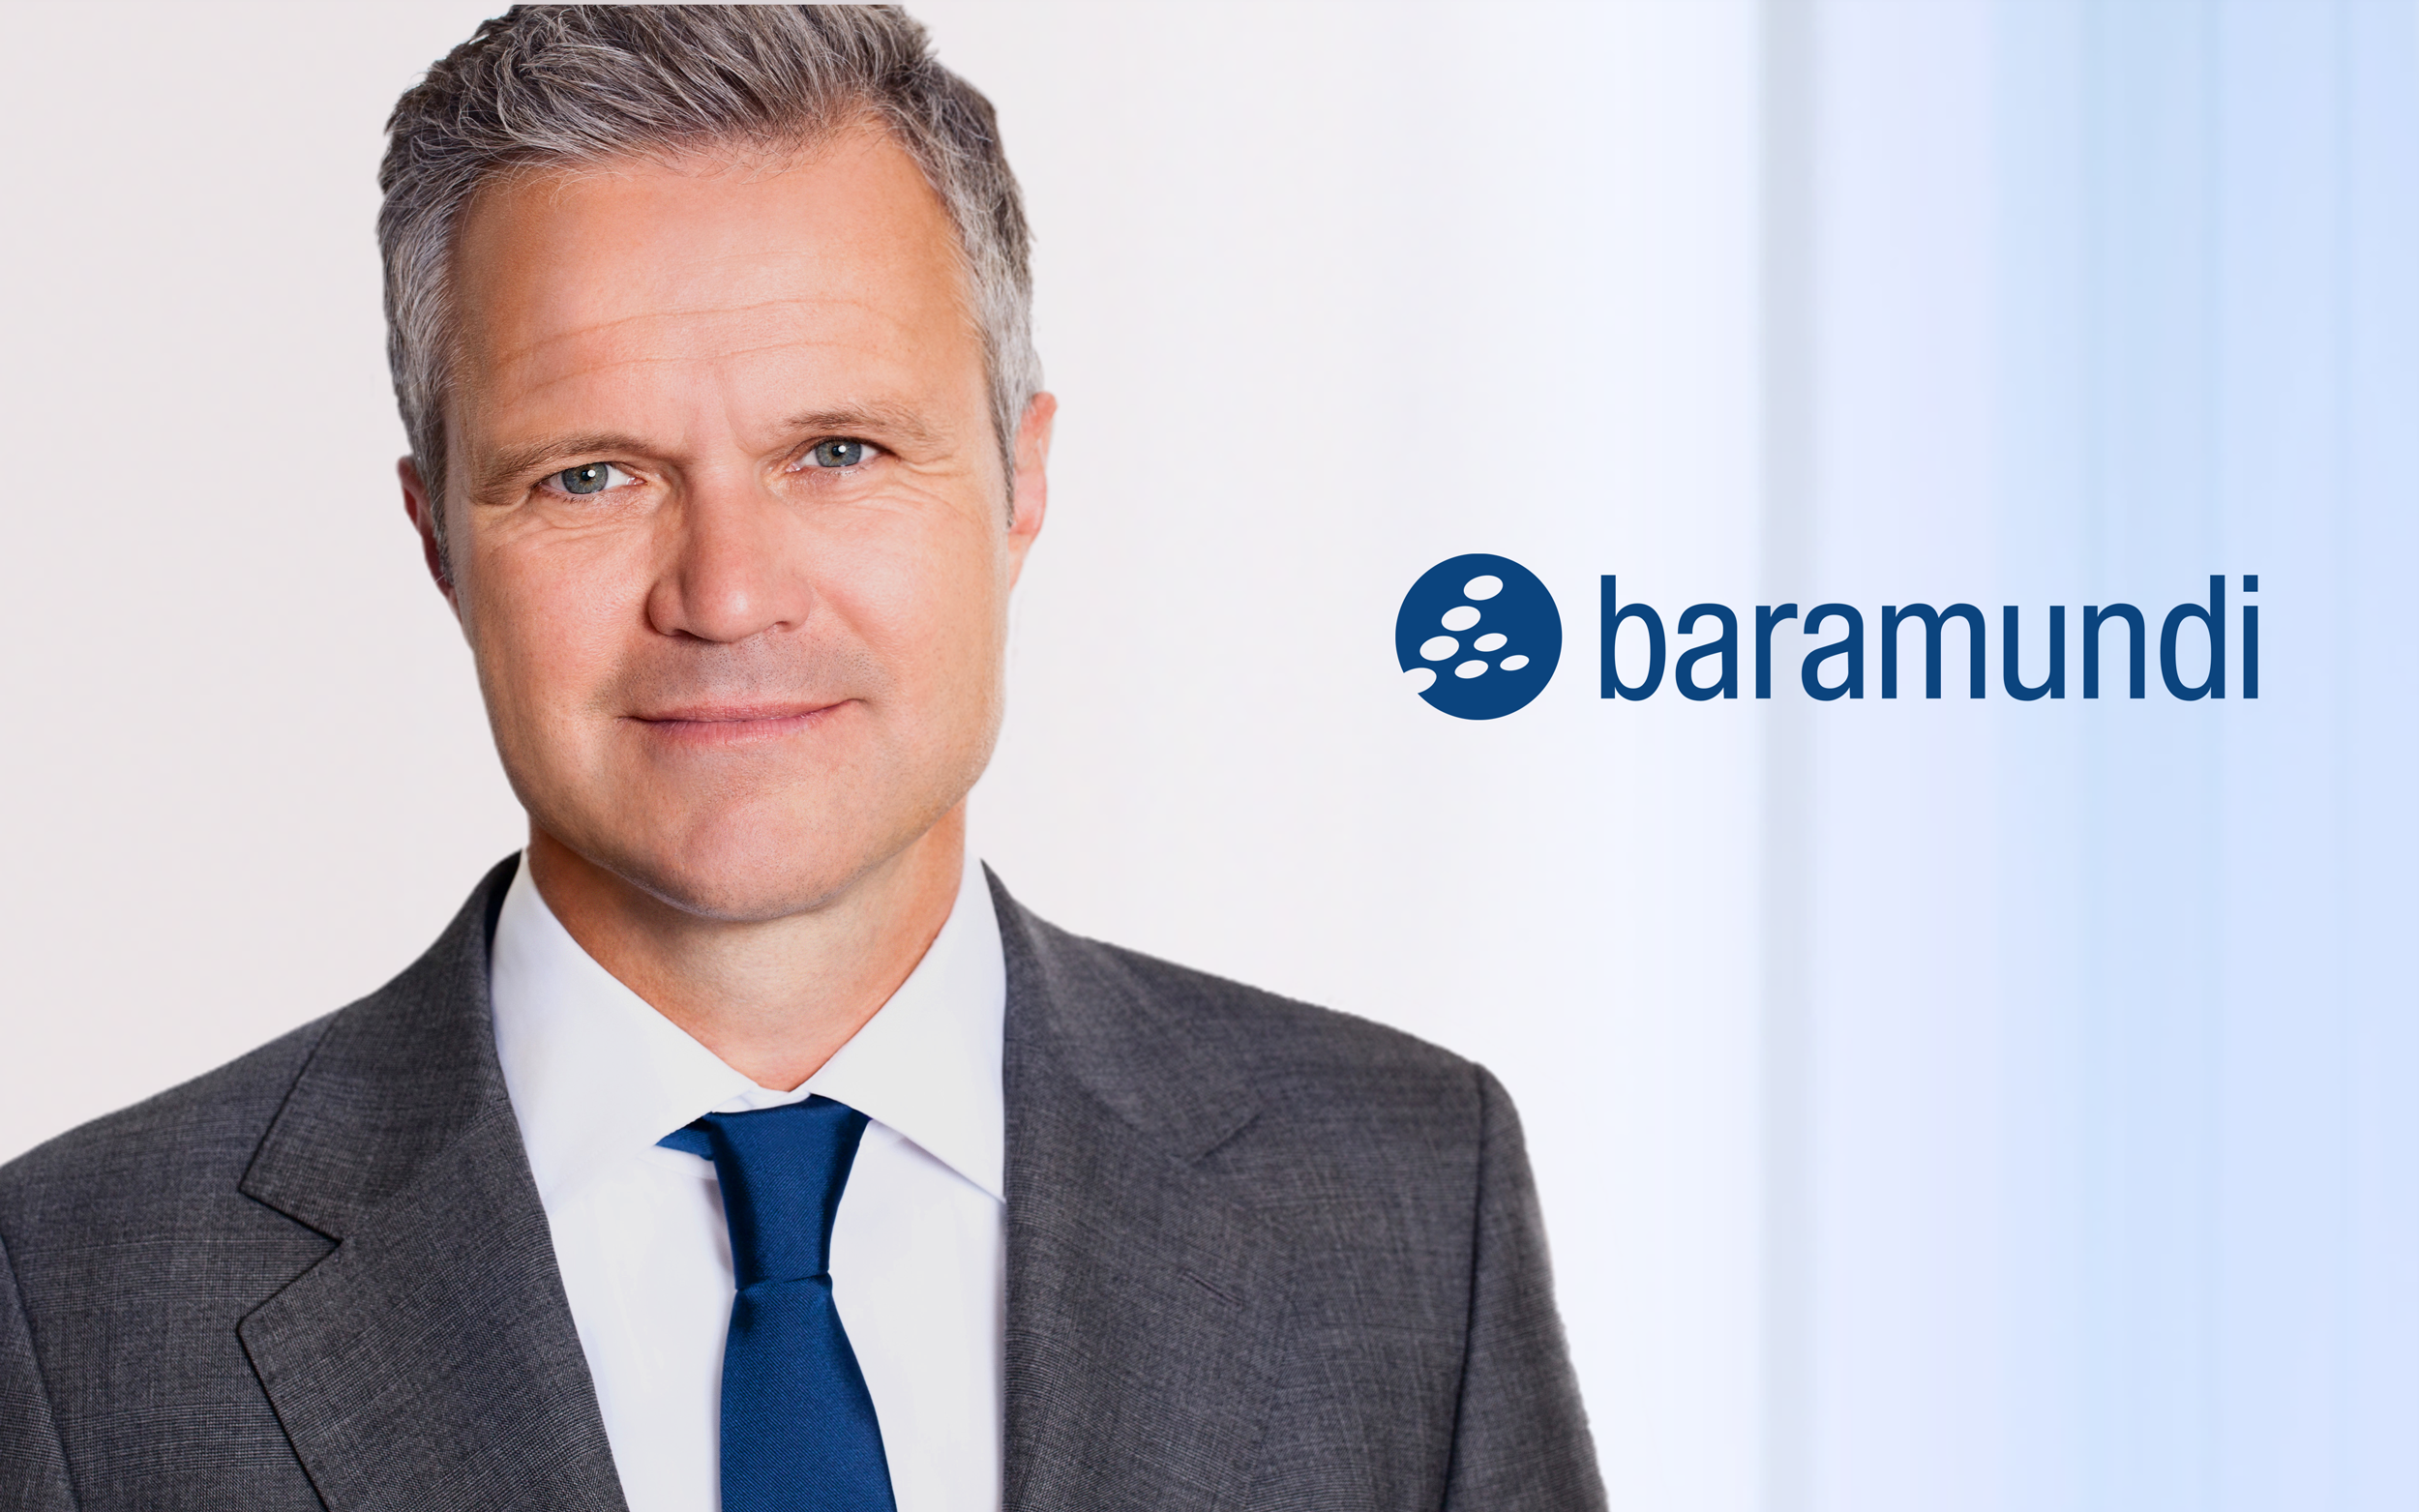 Uwe Beikirch - baramundi software AG Executive Board Member